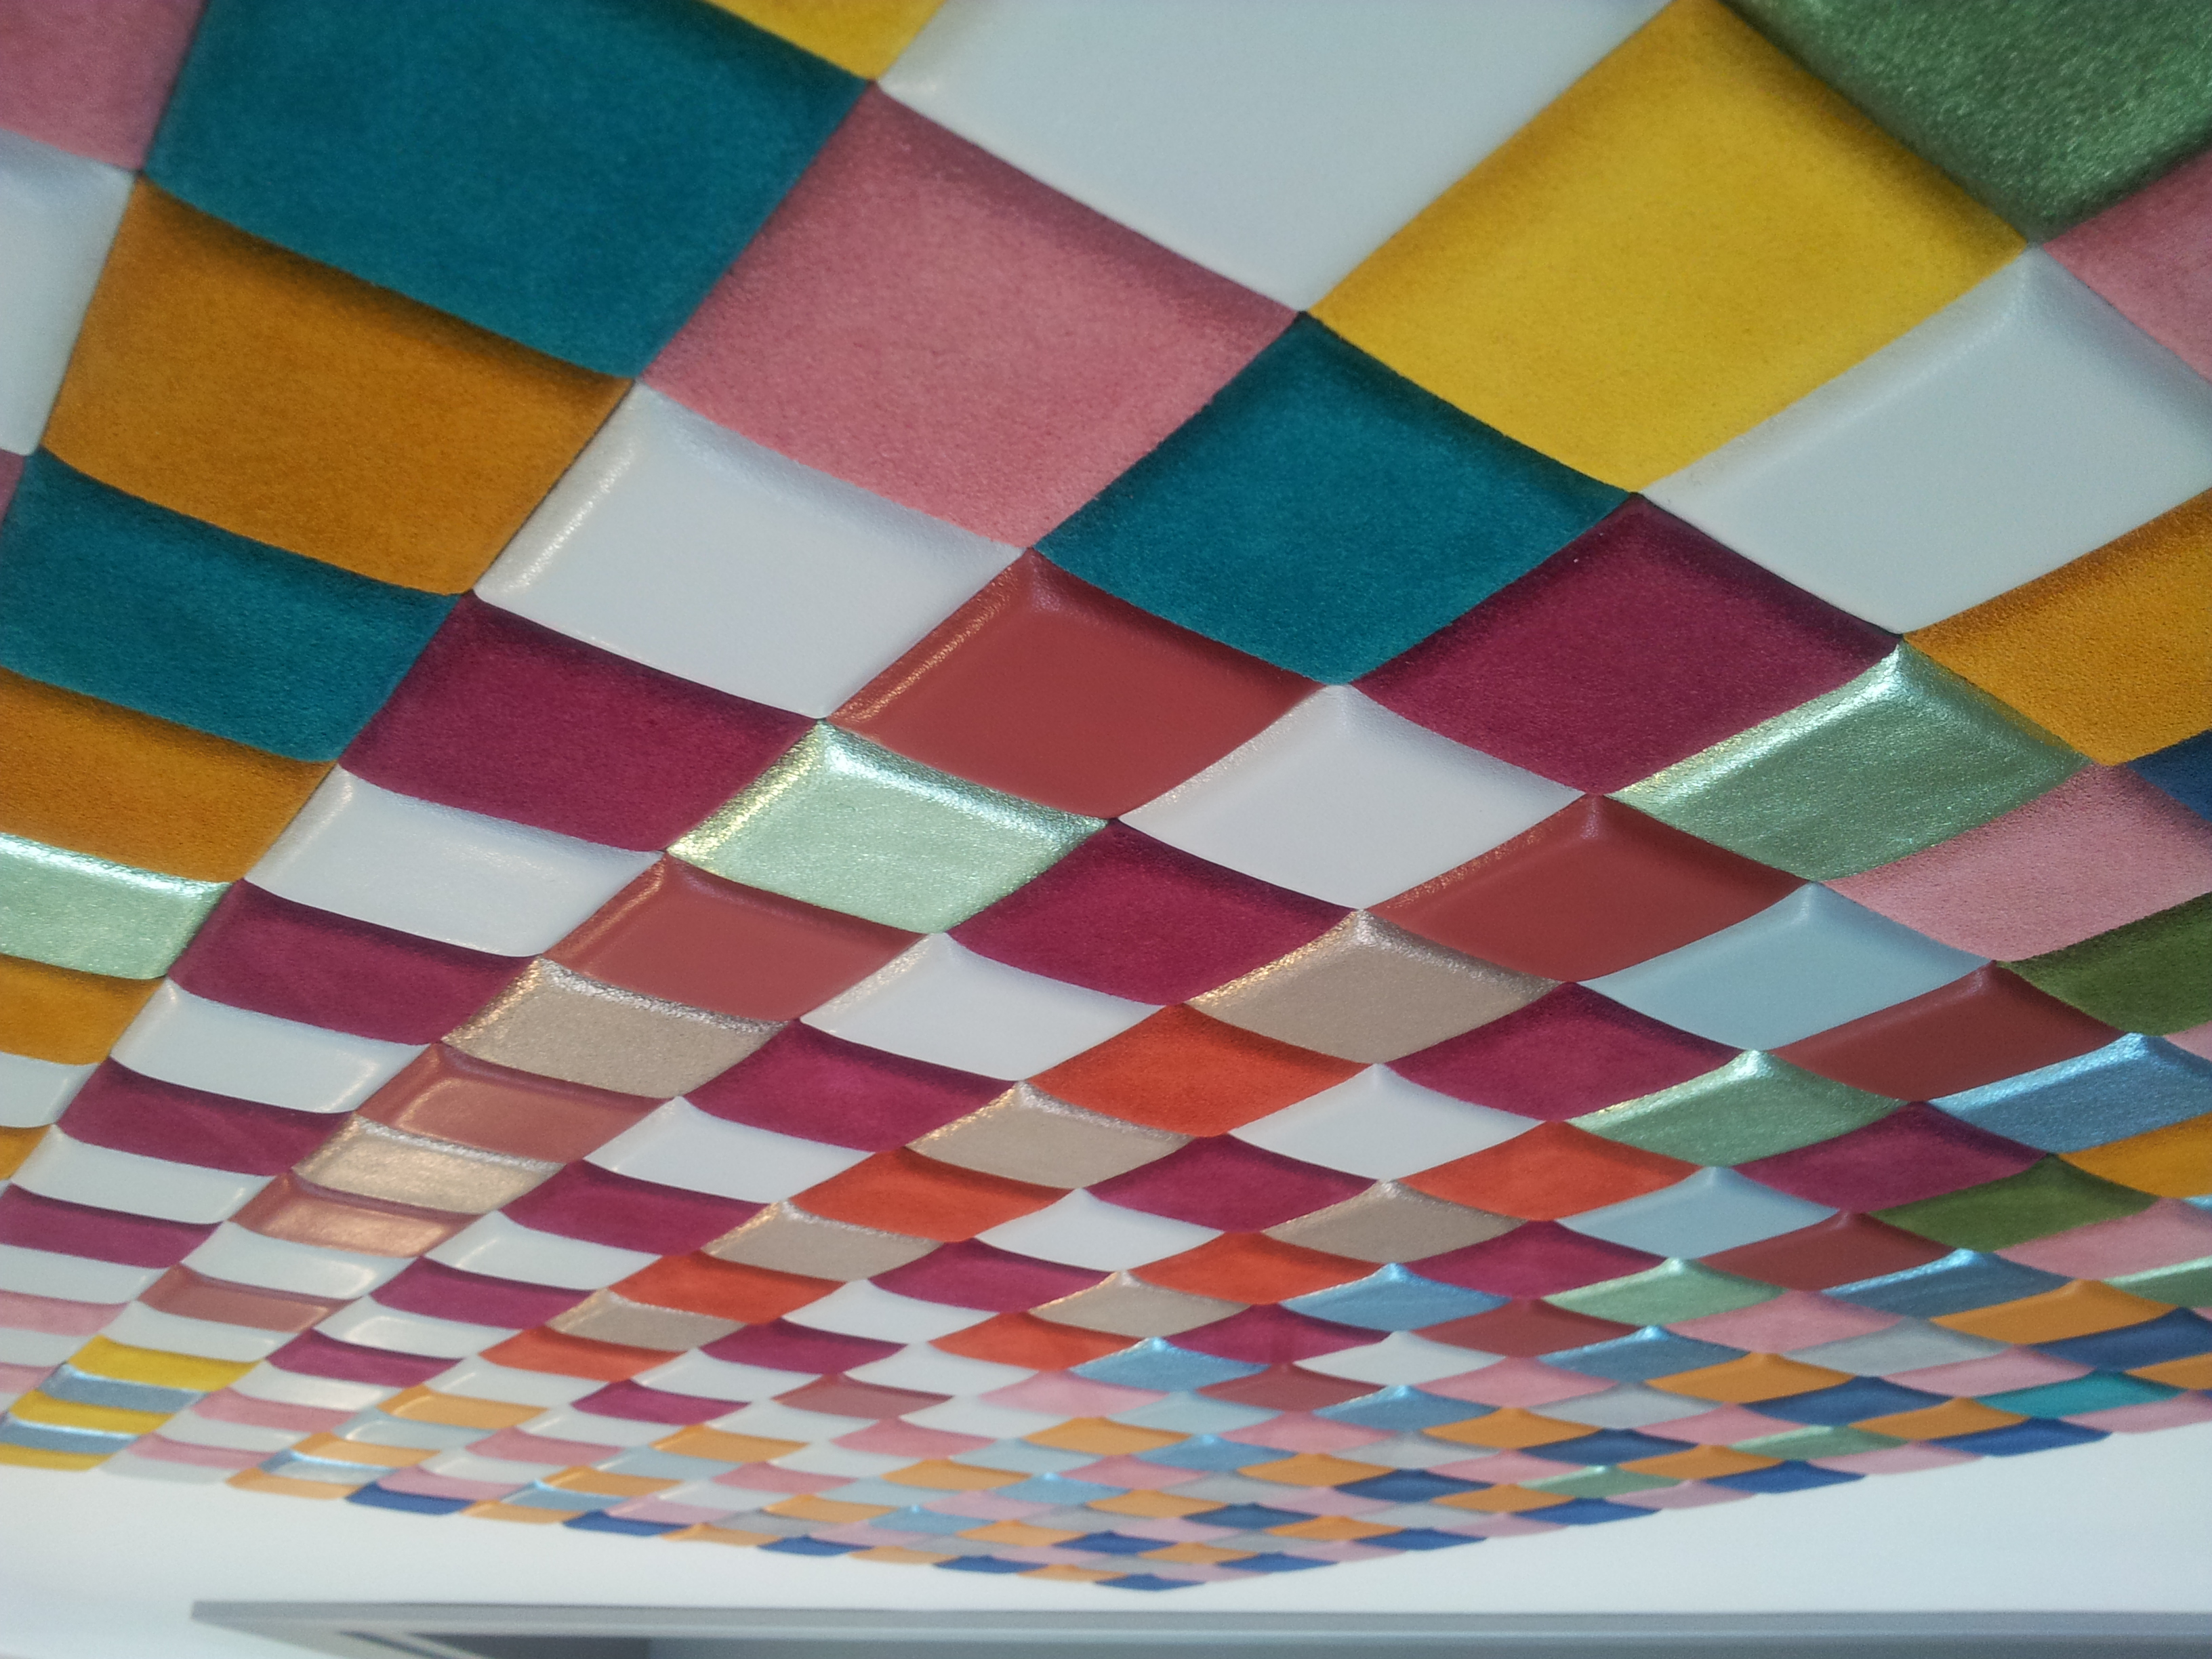 Square Shaped Colorful Removable Tile